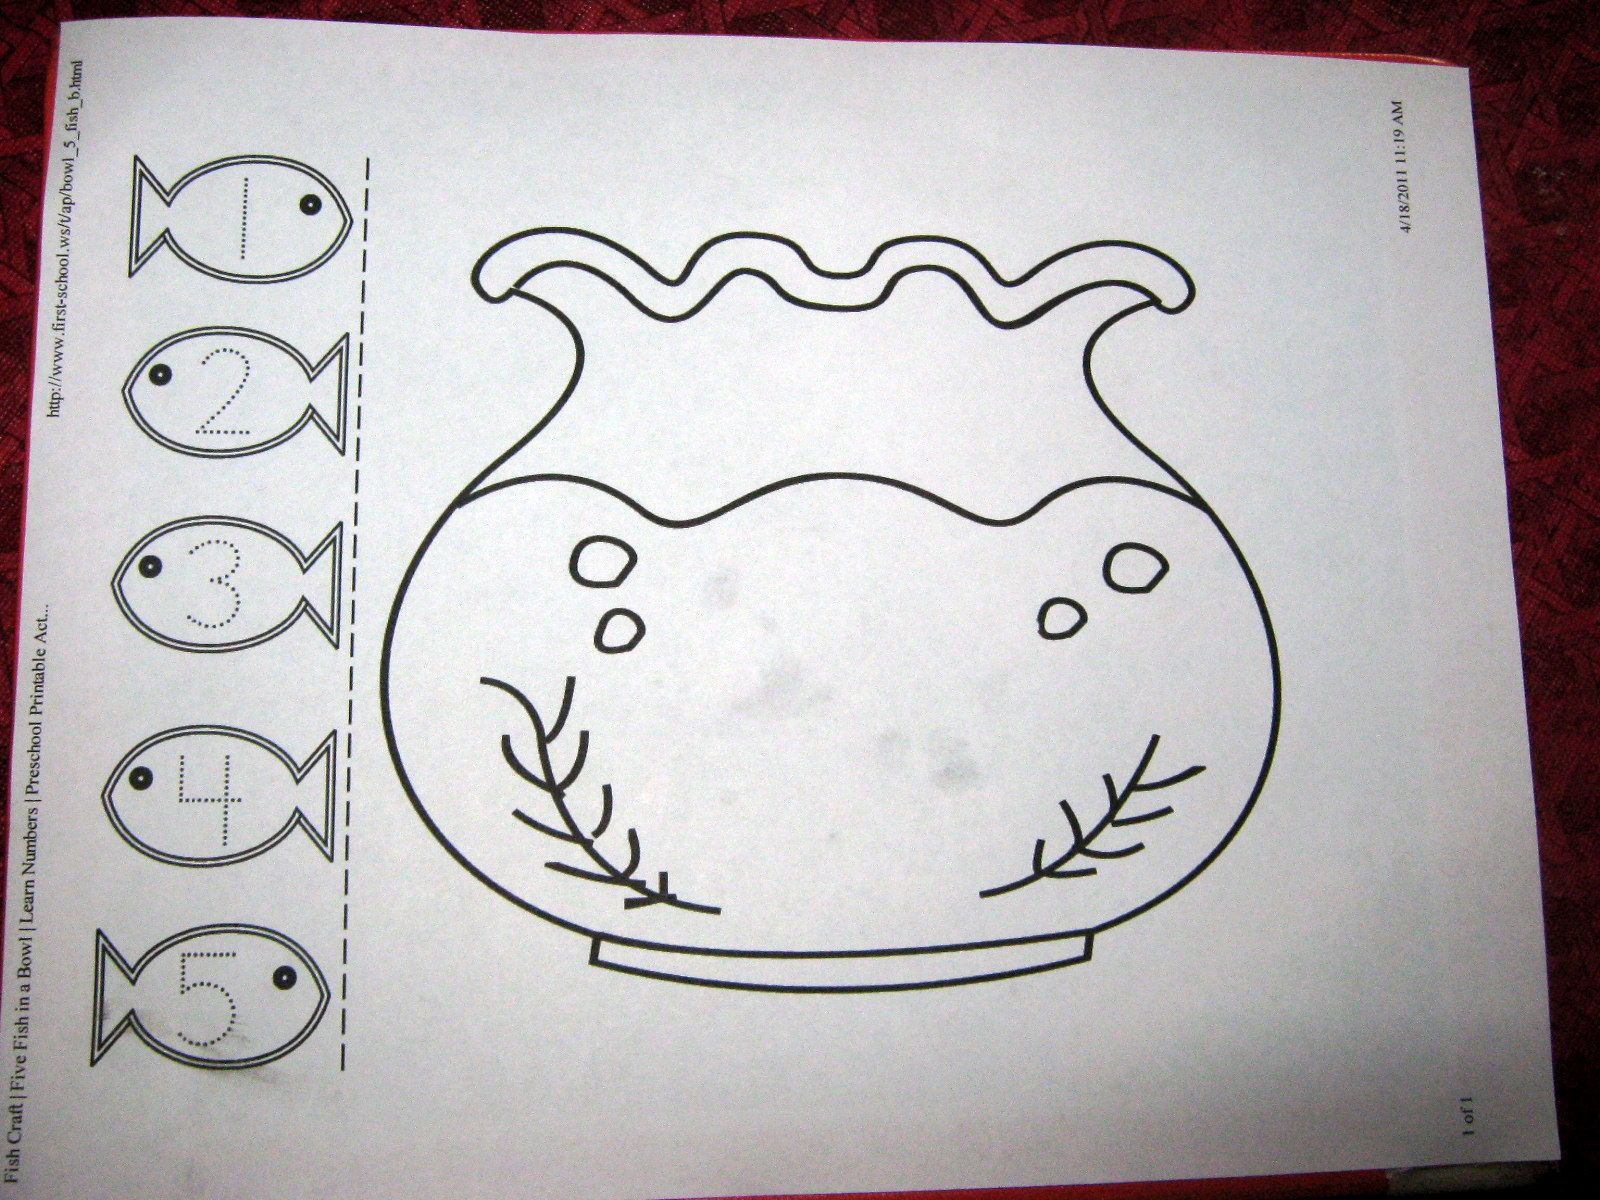 Fish Craft Template | Ordinal number practice activity. | crafts ...